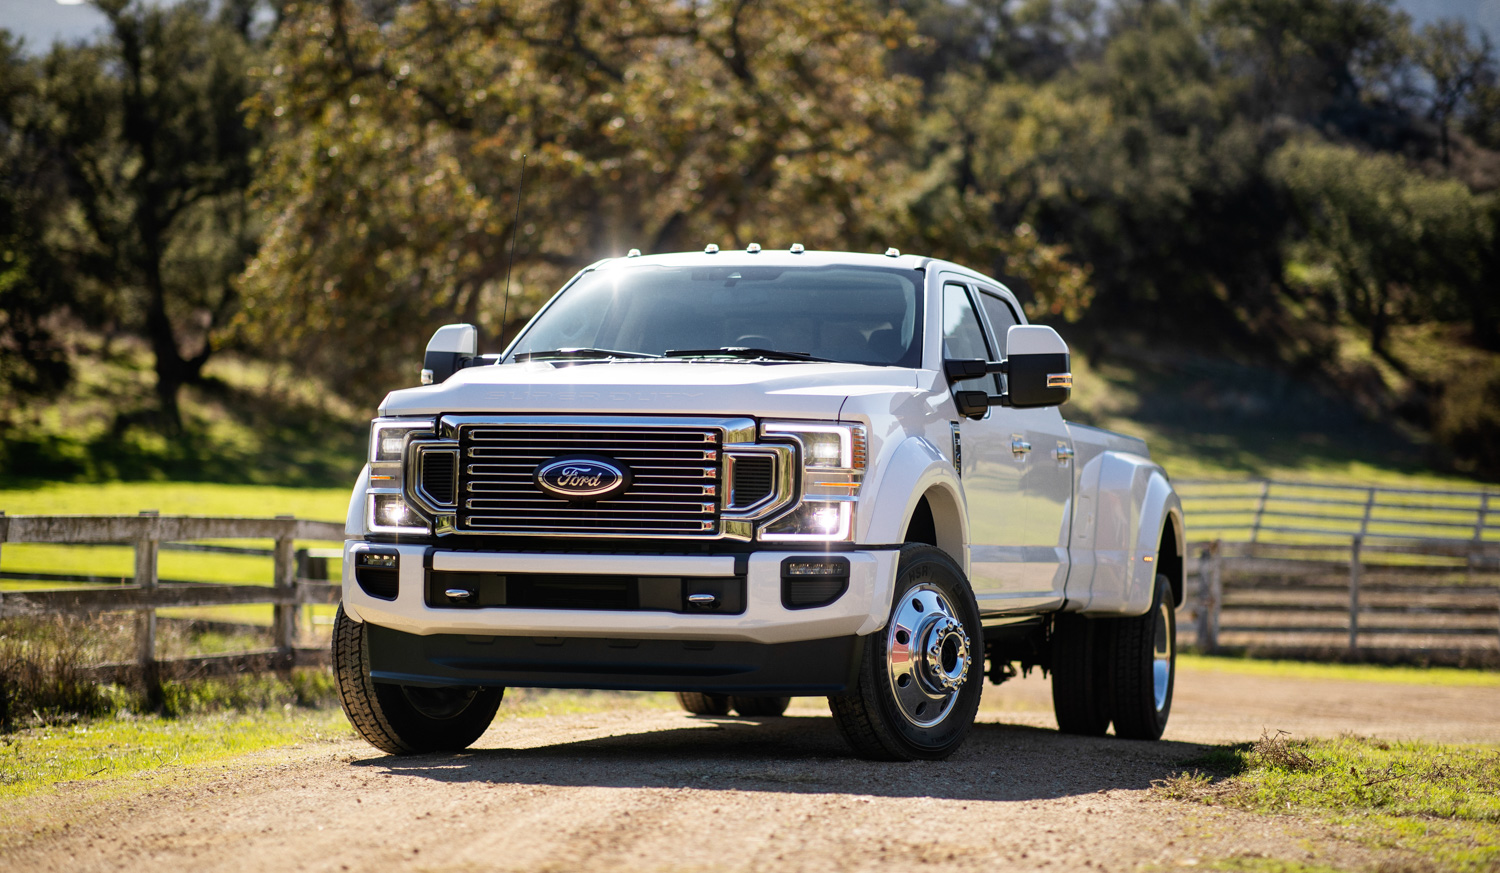 2020 Ford F-450 Super Duty 3/4 front dirt road